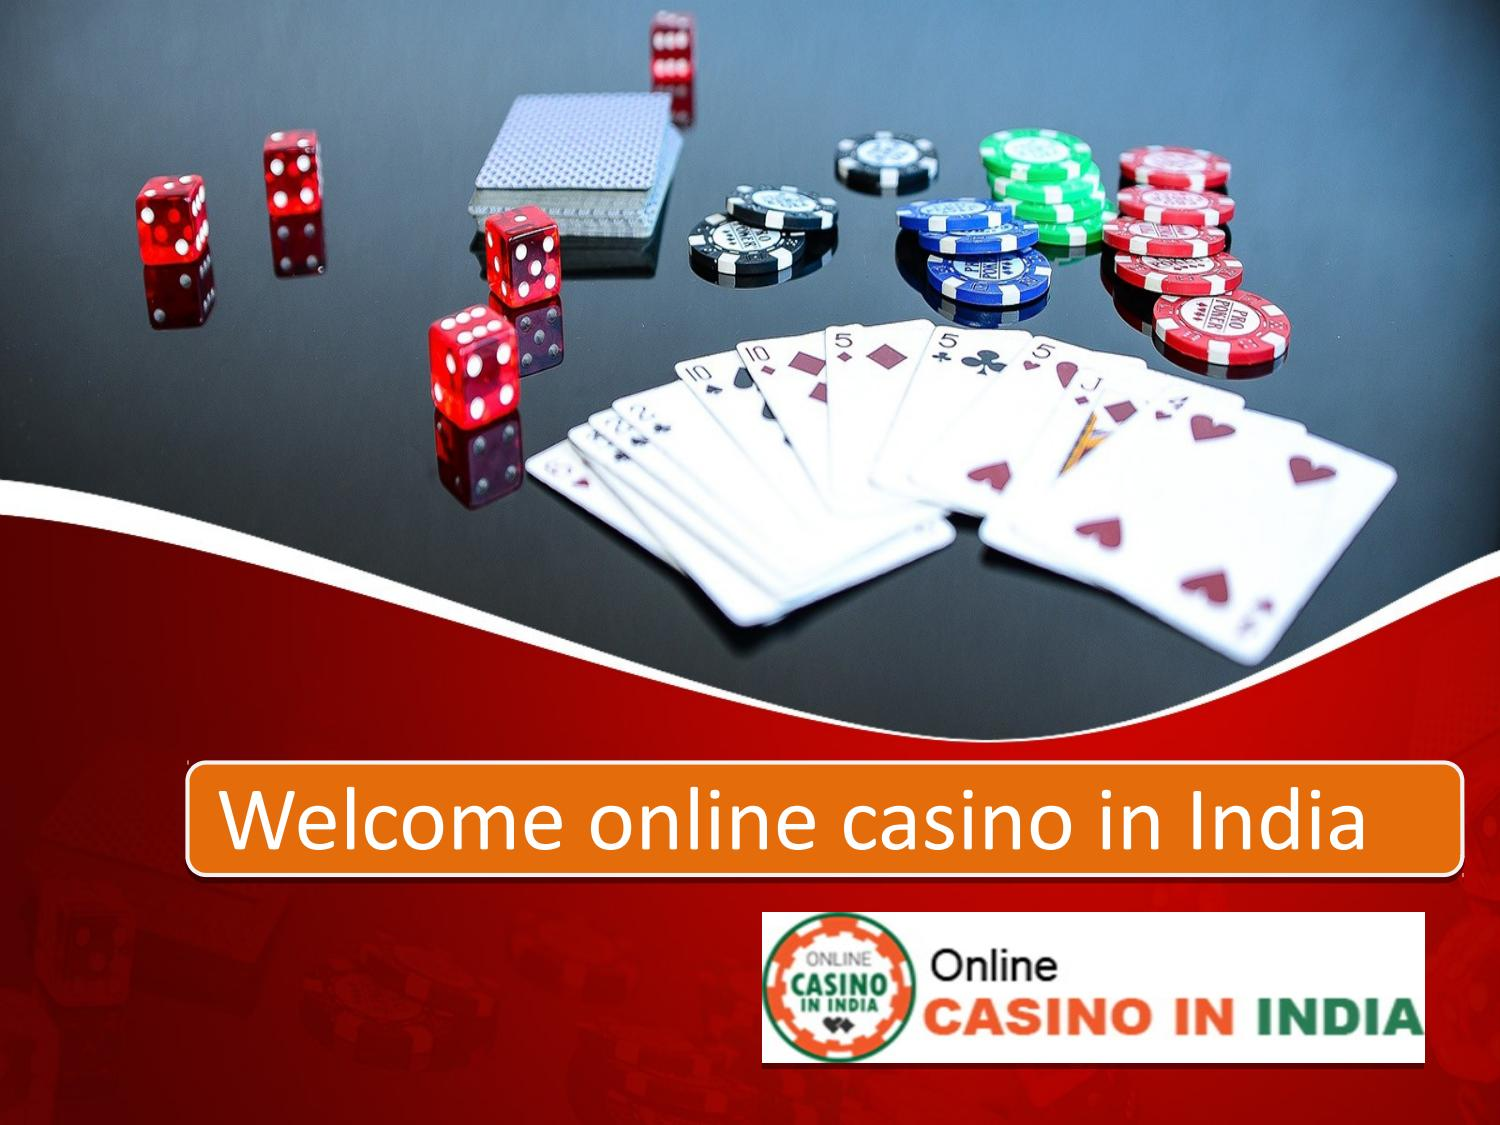 Online casinos games in India | Betway casino in India by